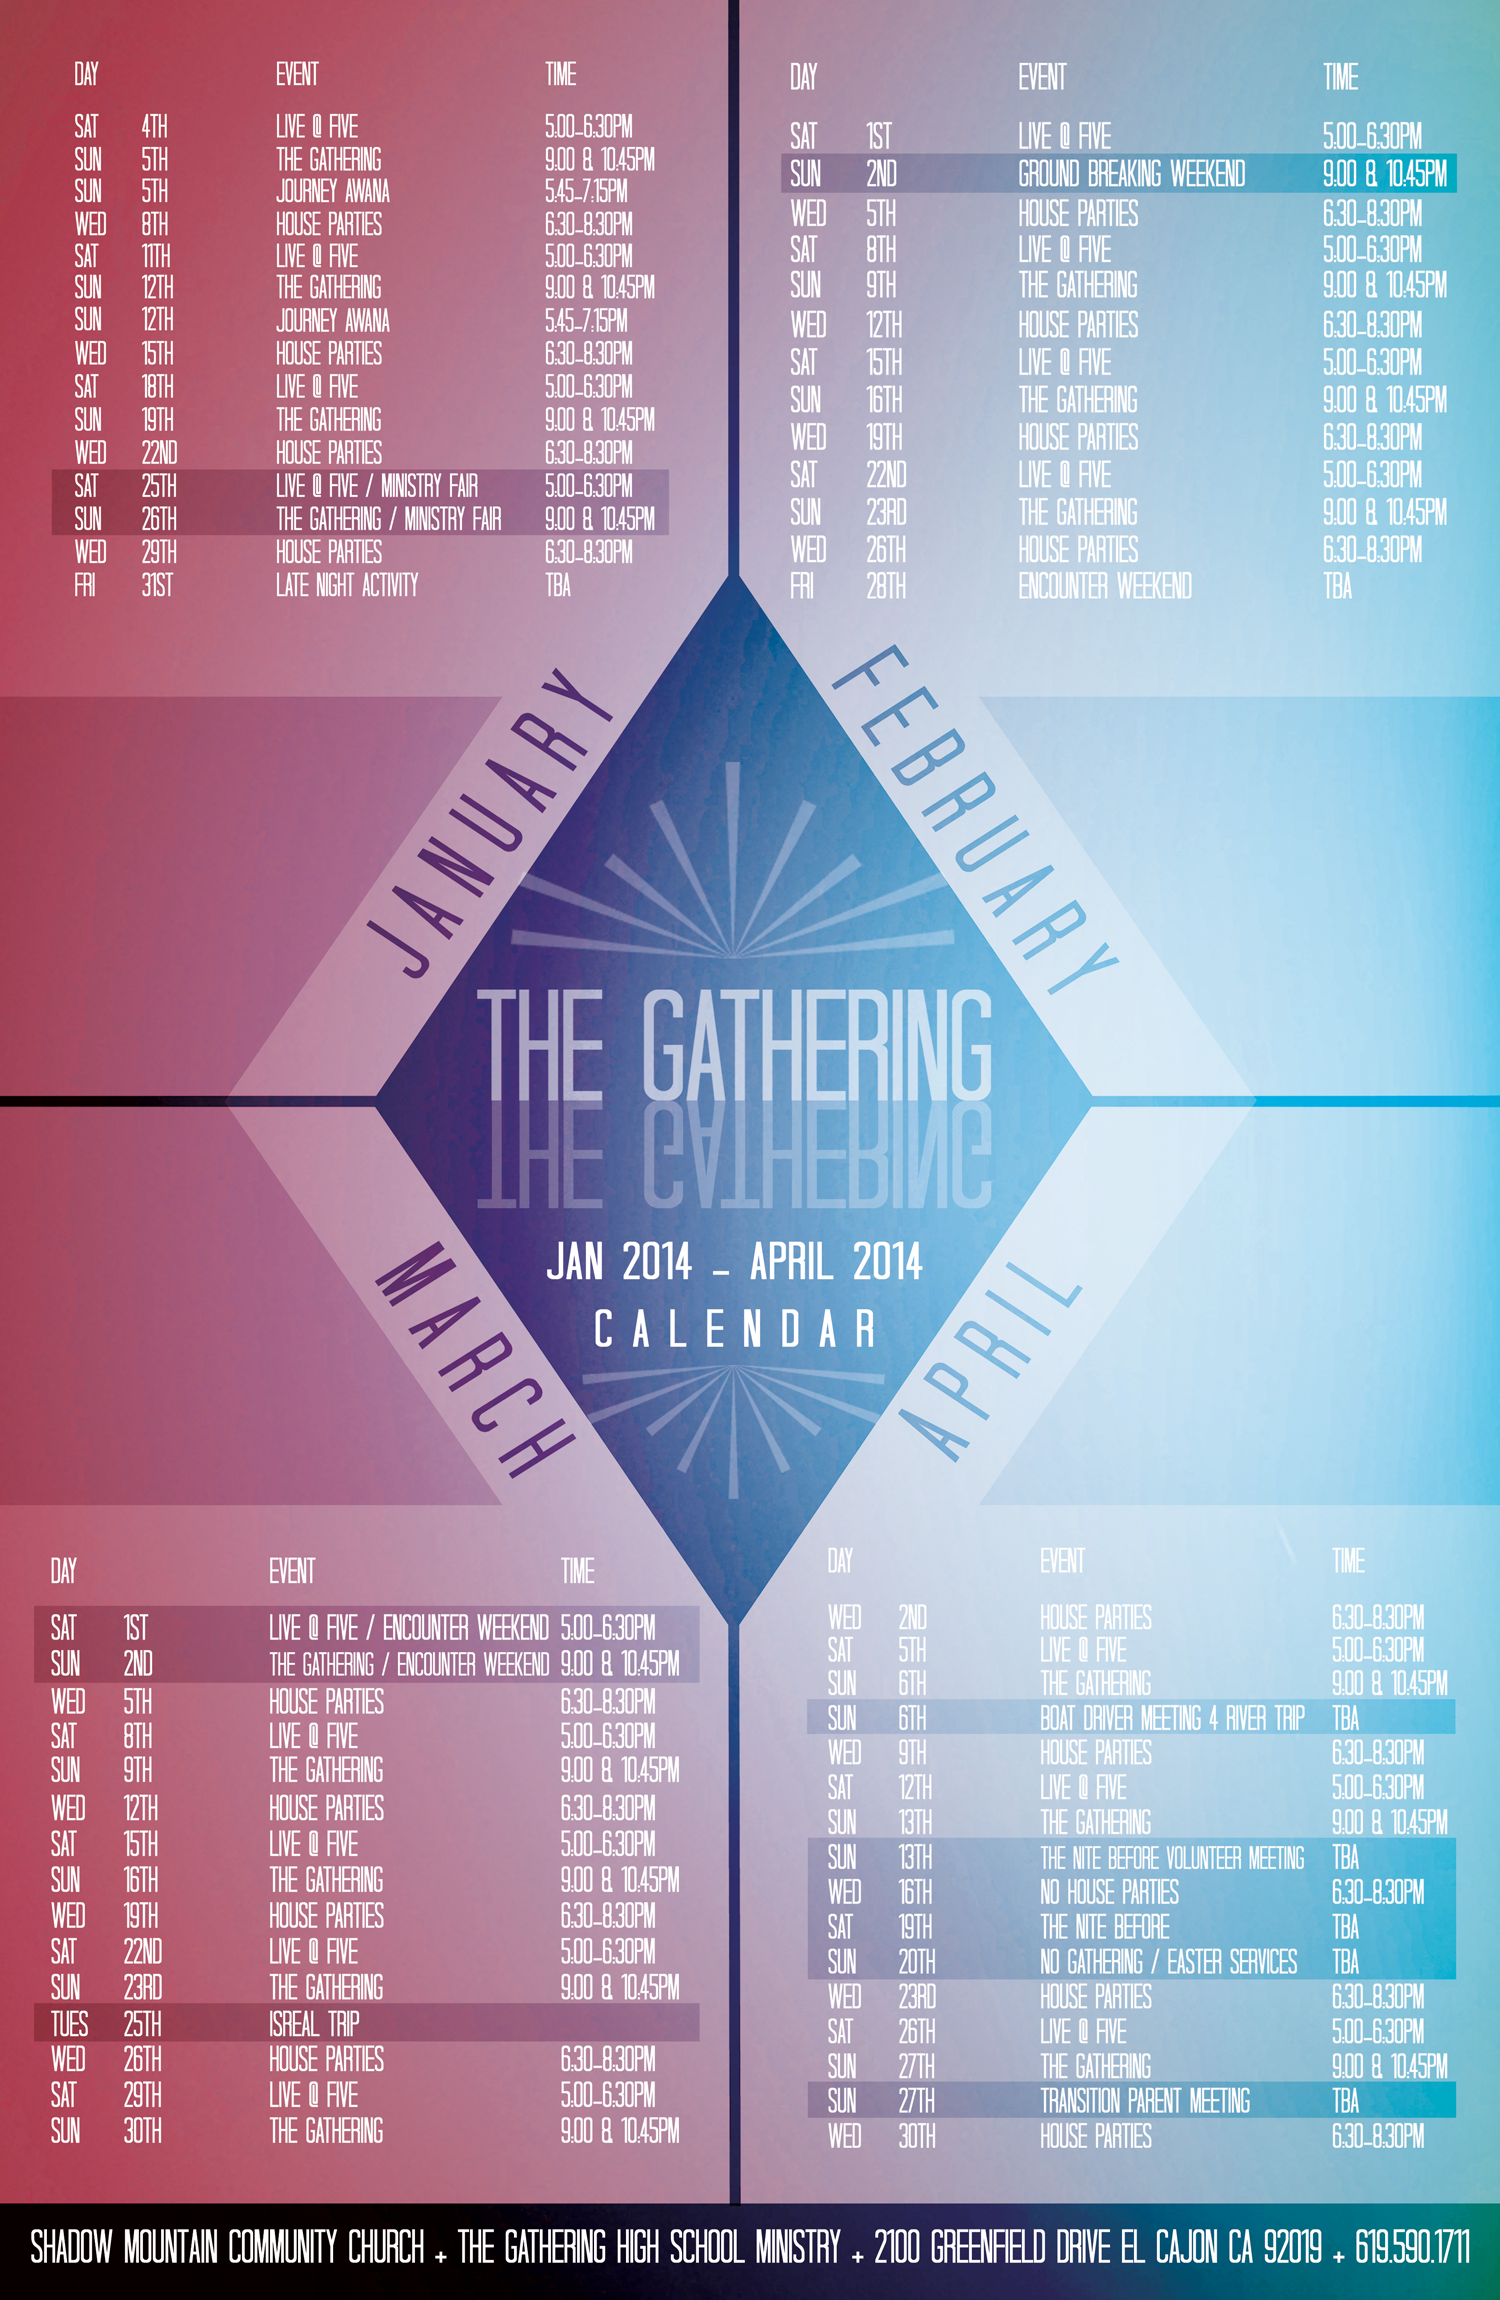 Church Calendar Design.Shadow Mountain Community Church High School Calendar Nogo Design